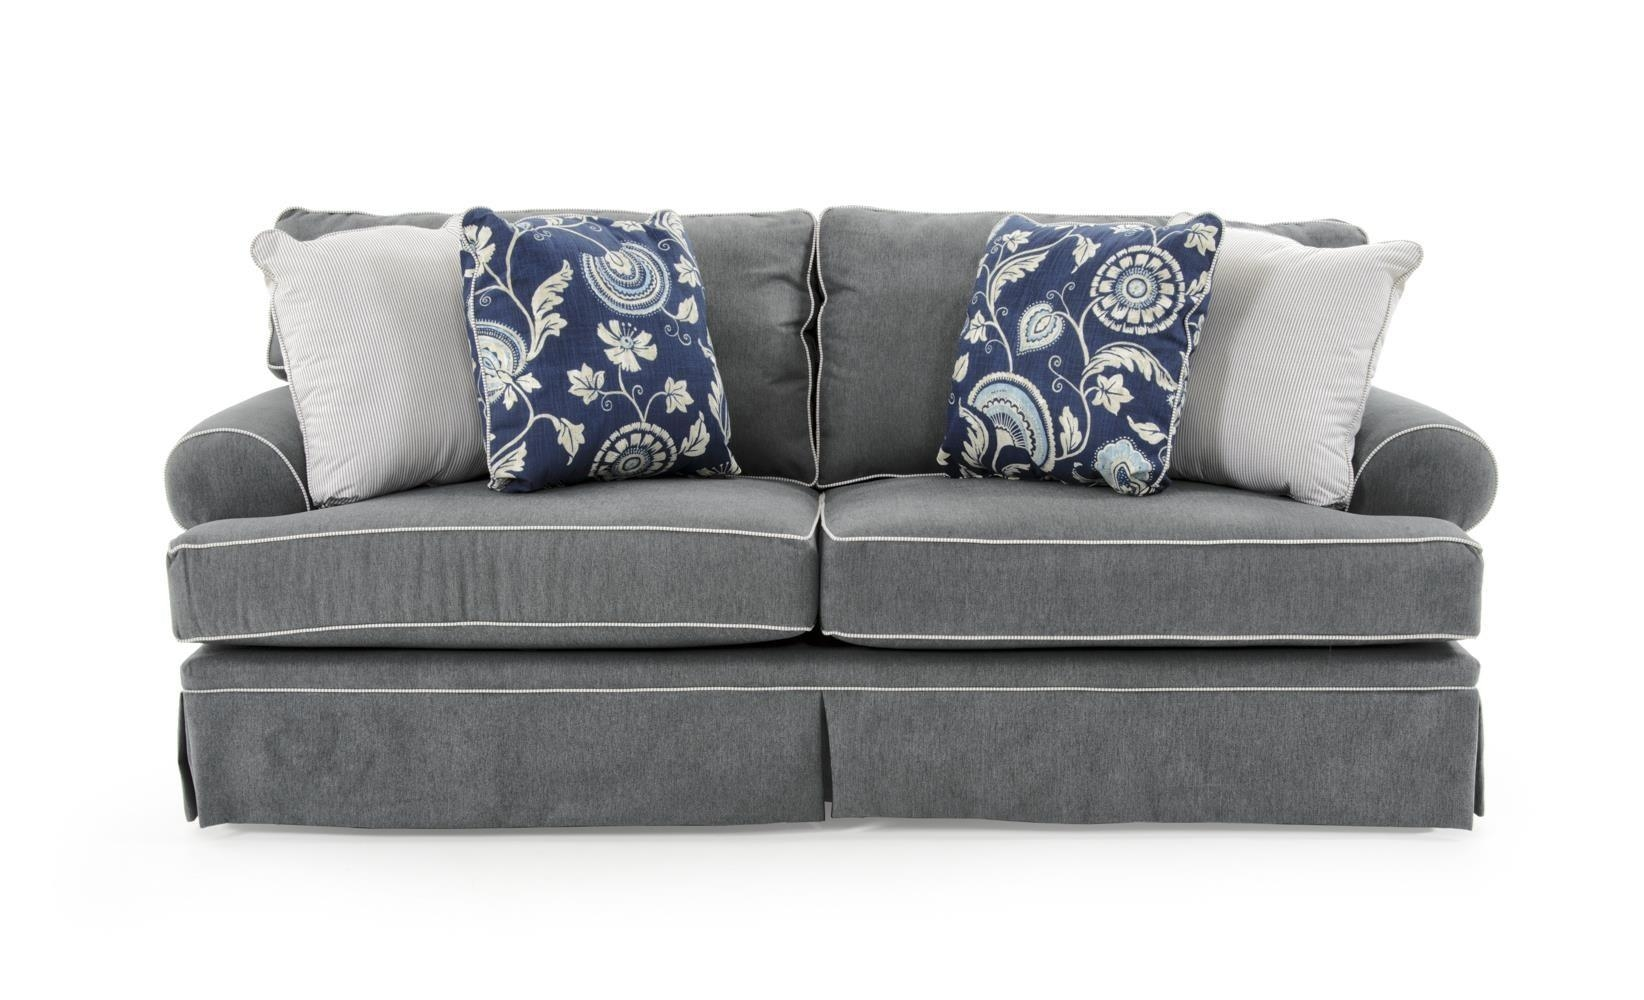 Broyhill Furniture Emily Casual Style Sofa With Rolled Arms And Pertaining To Broyhill Emily Sofas (View 8 of 20)